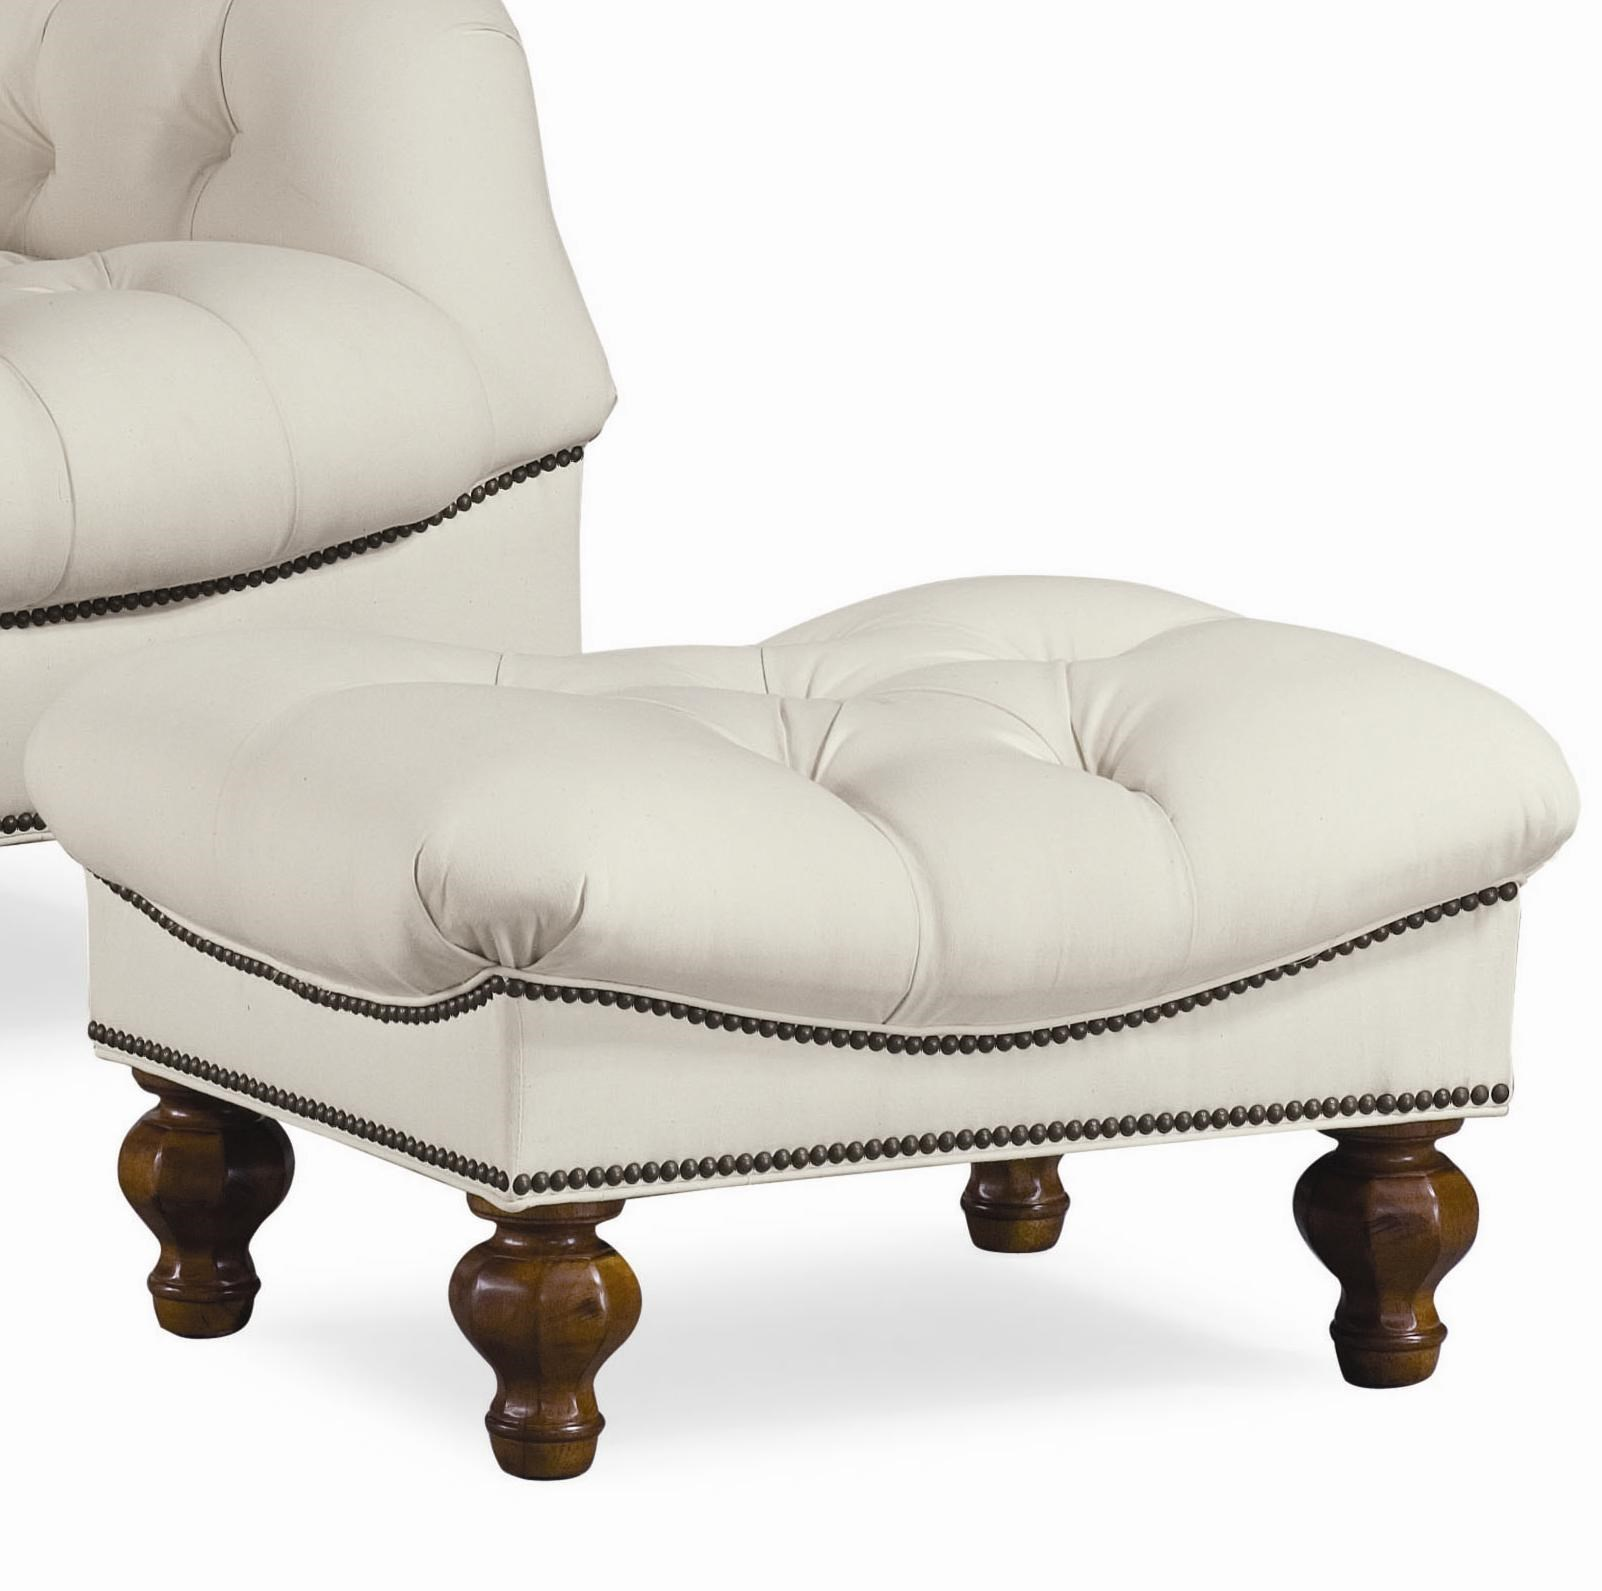 chairs and ottomans upholstered zero gravity chair indoor thomasville walden tufted seat ottoman